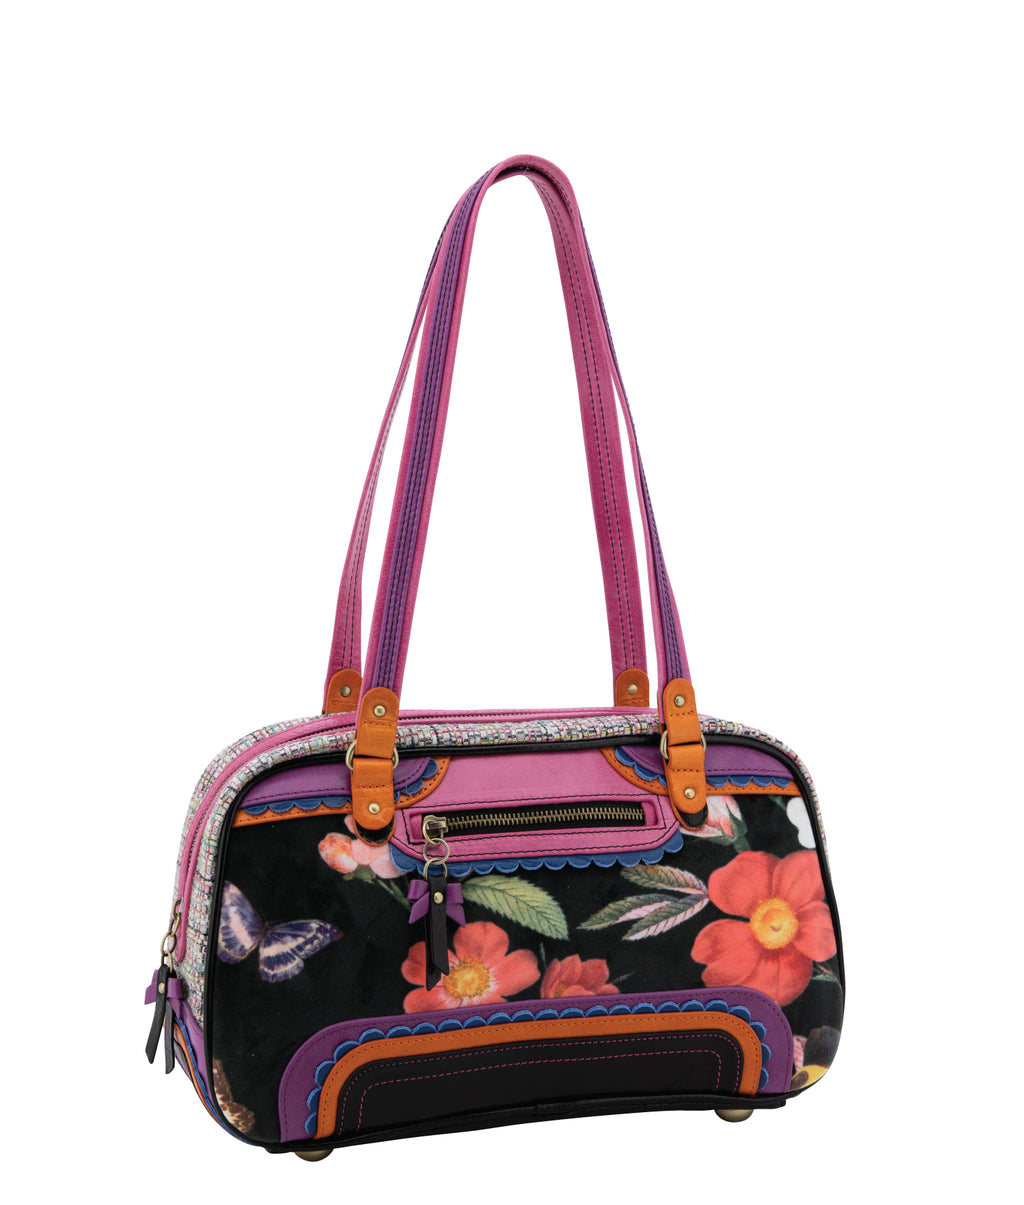 GEORGINA Shoulder Bag - Fiesta